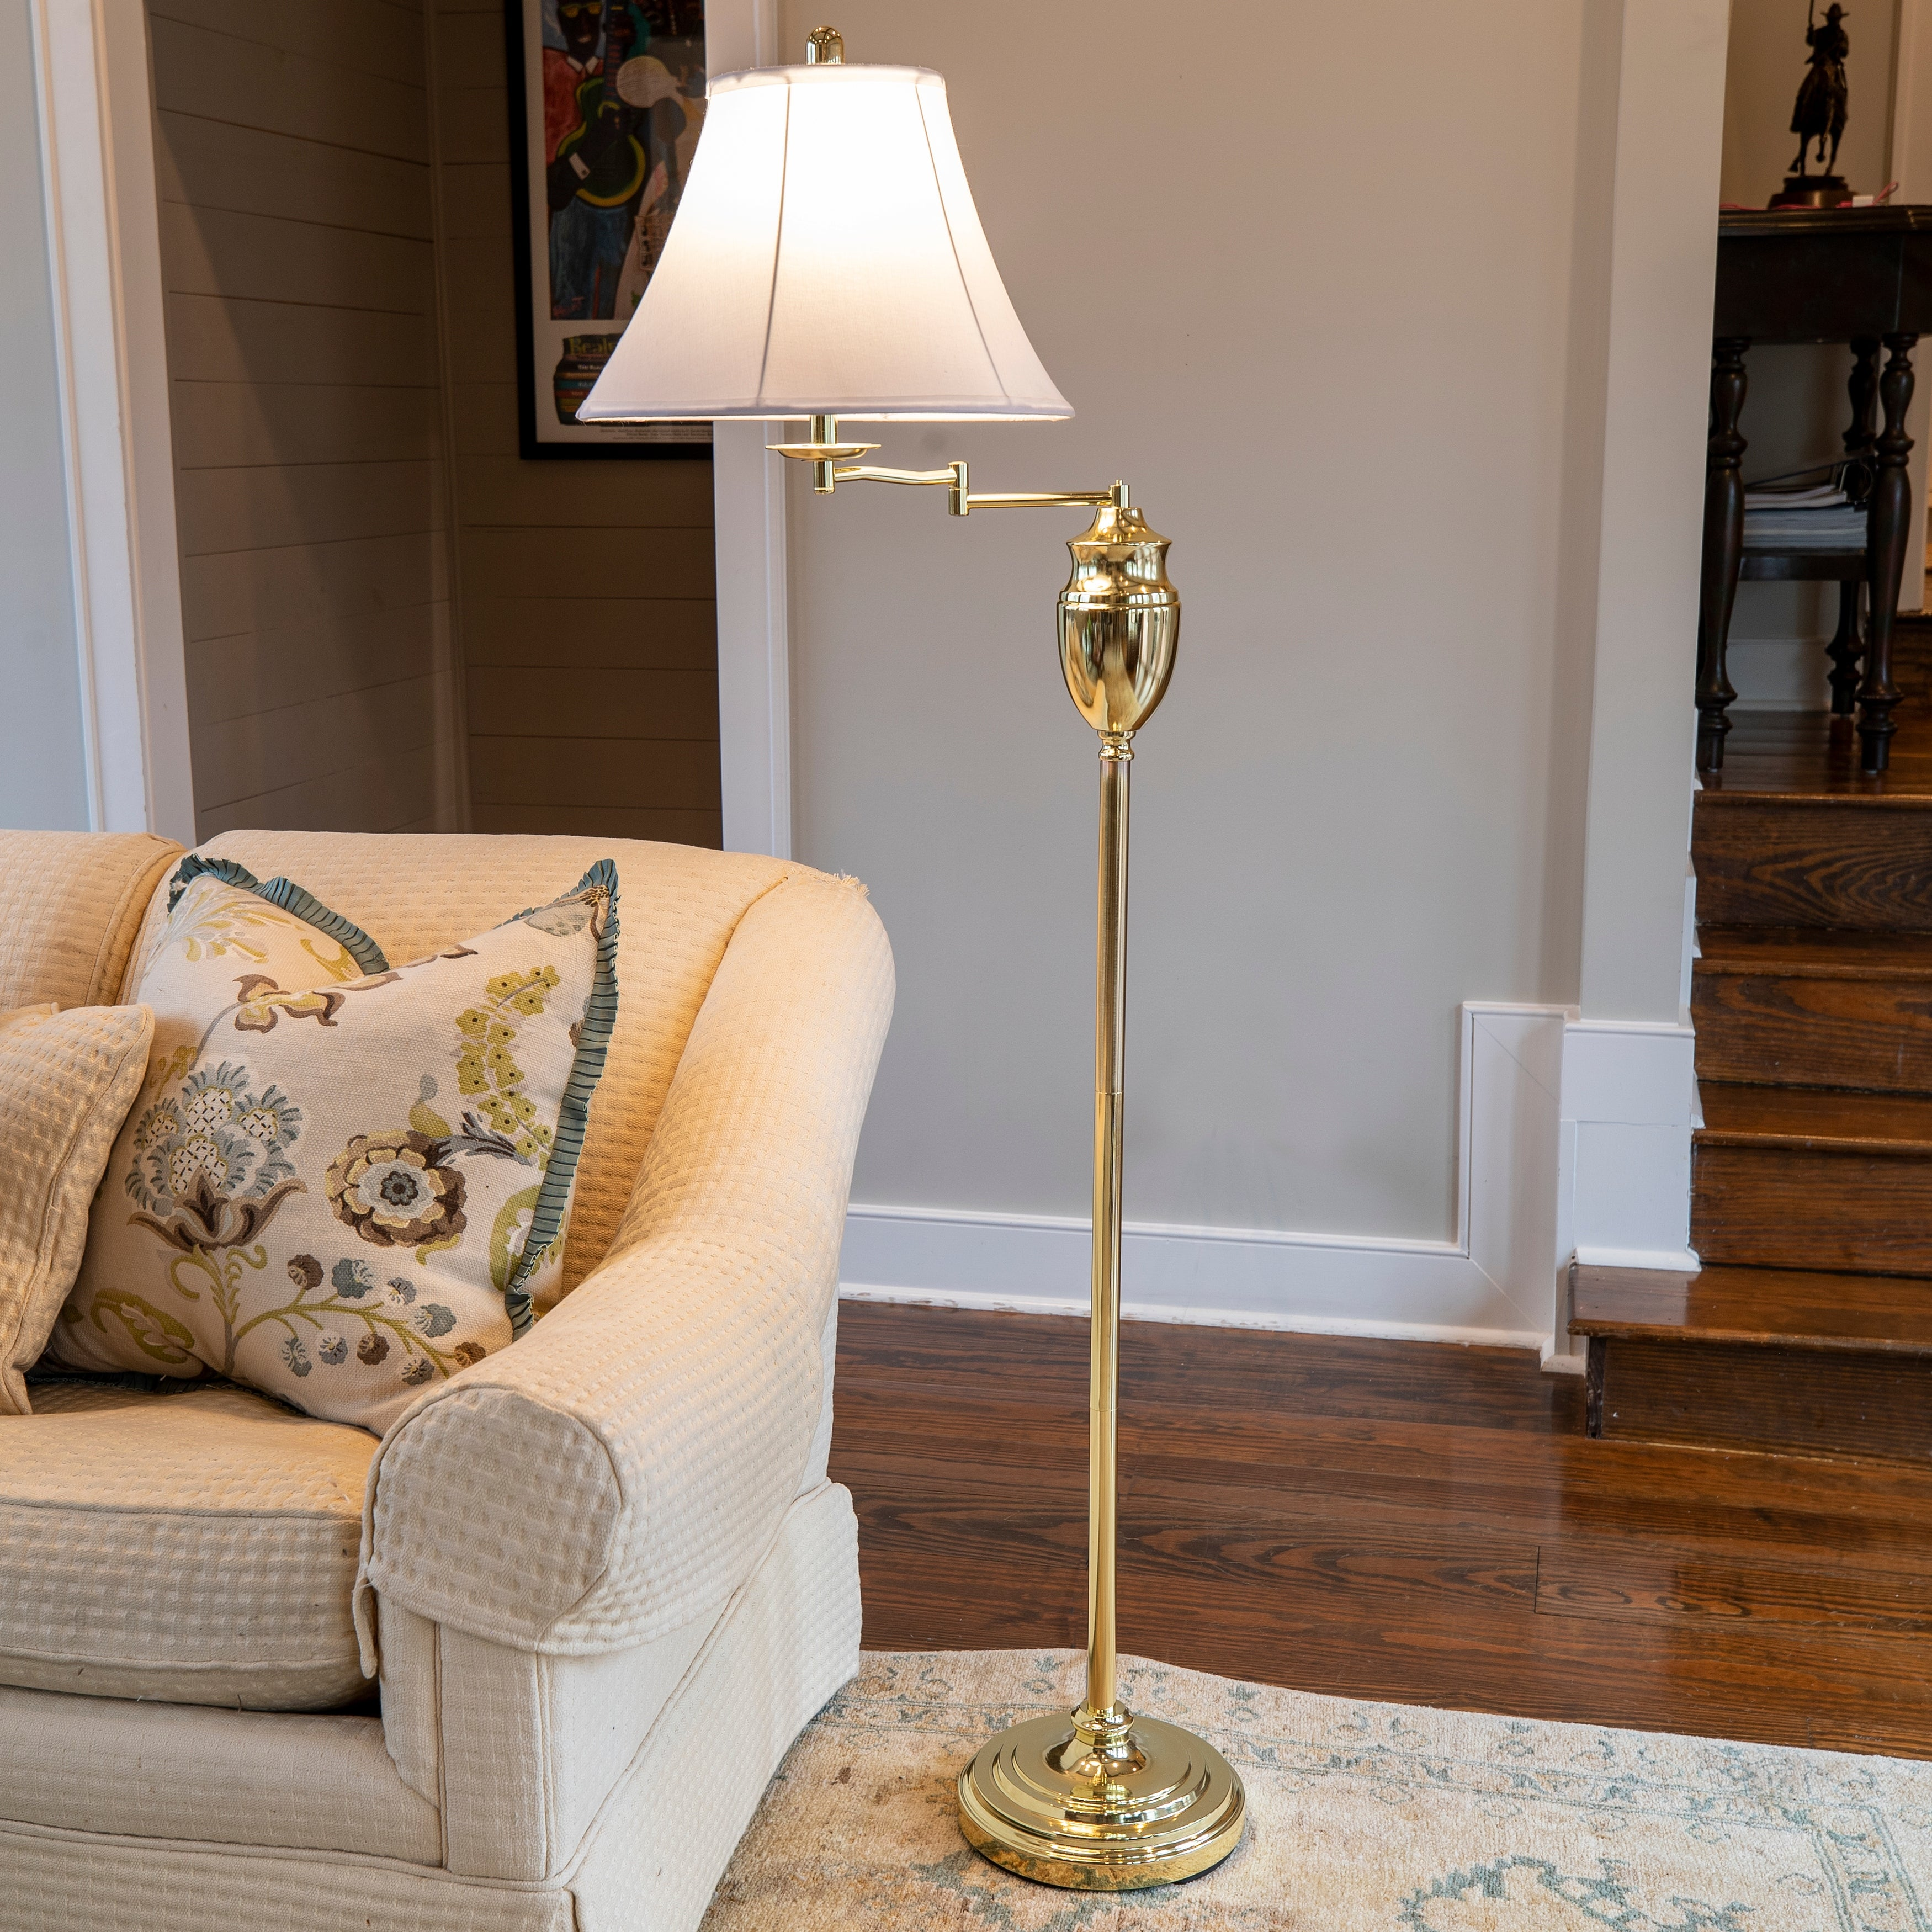 Image of: Shop Black Friday Deals On Swing Arm Floor Lamp With Faux Silk Shade Overstock 9663345